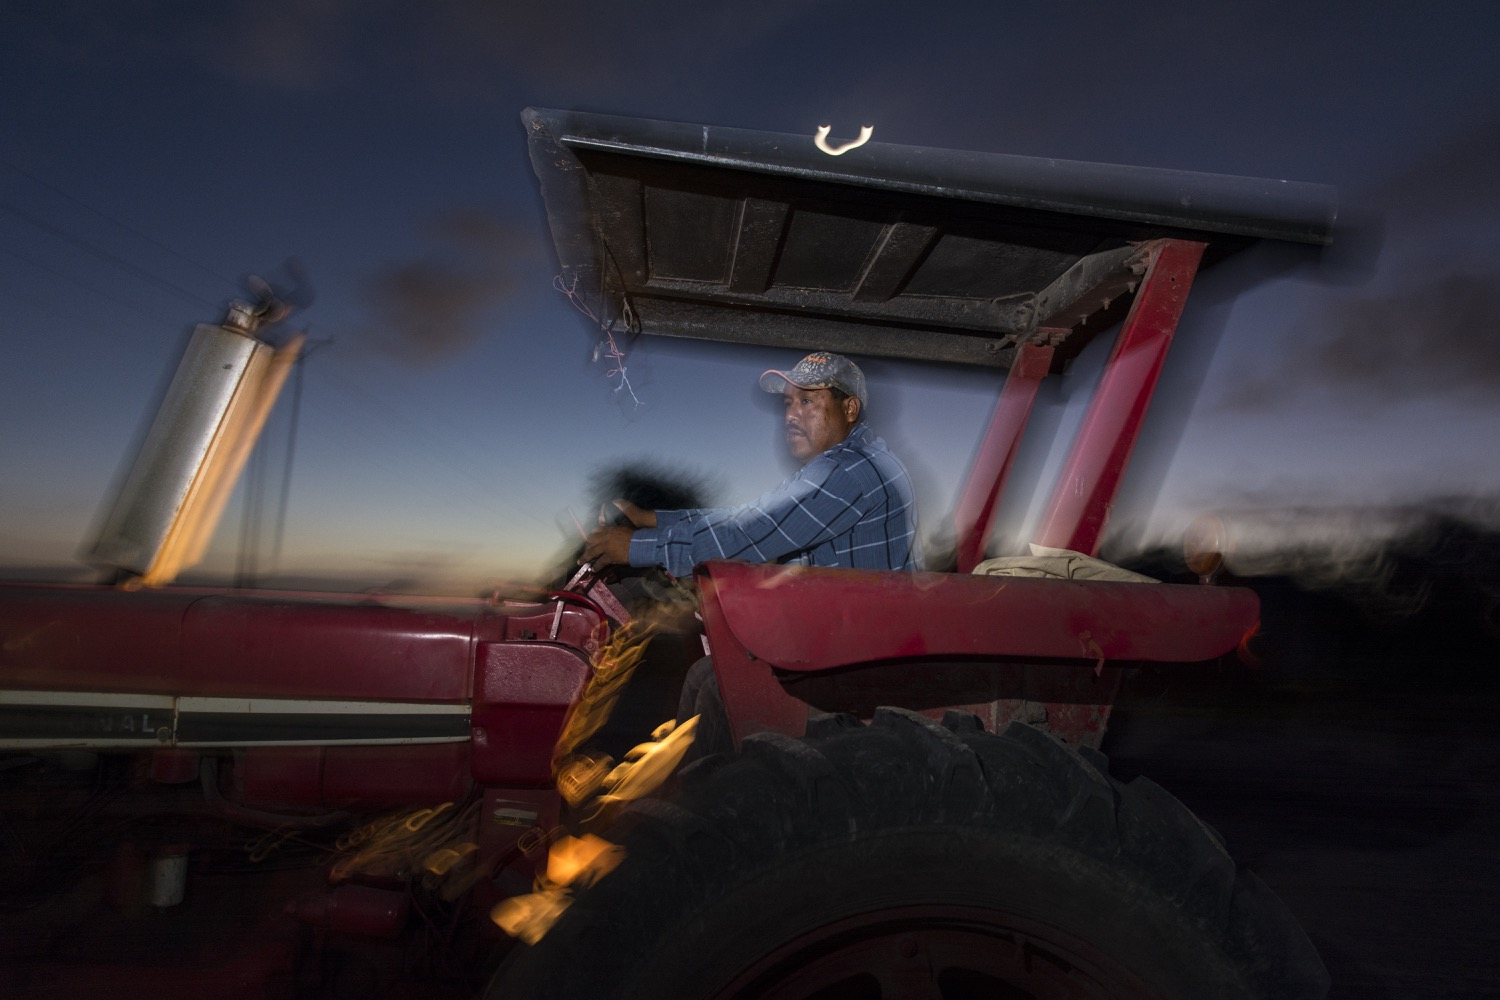 Before dawn, a farmworker starts the tractor he will drive all day in the sugarcane fields of South Texas. ©2018/Jerry Redfern